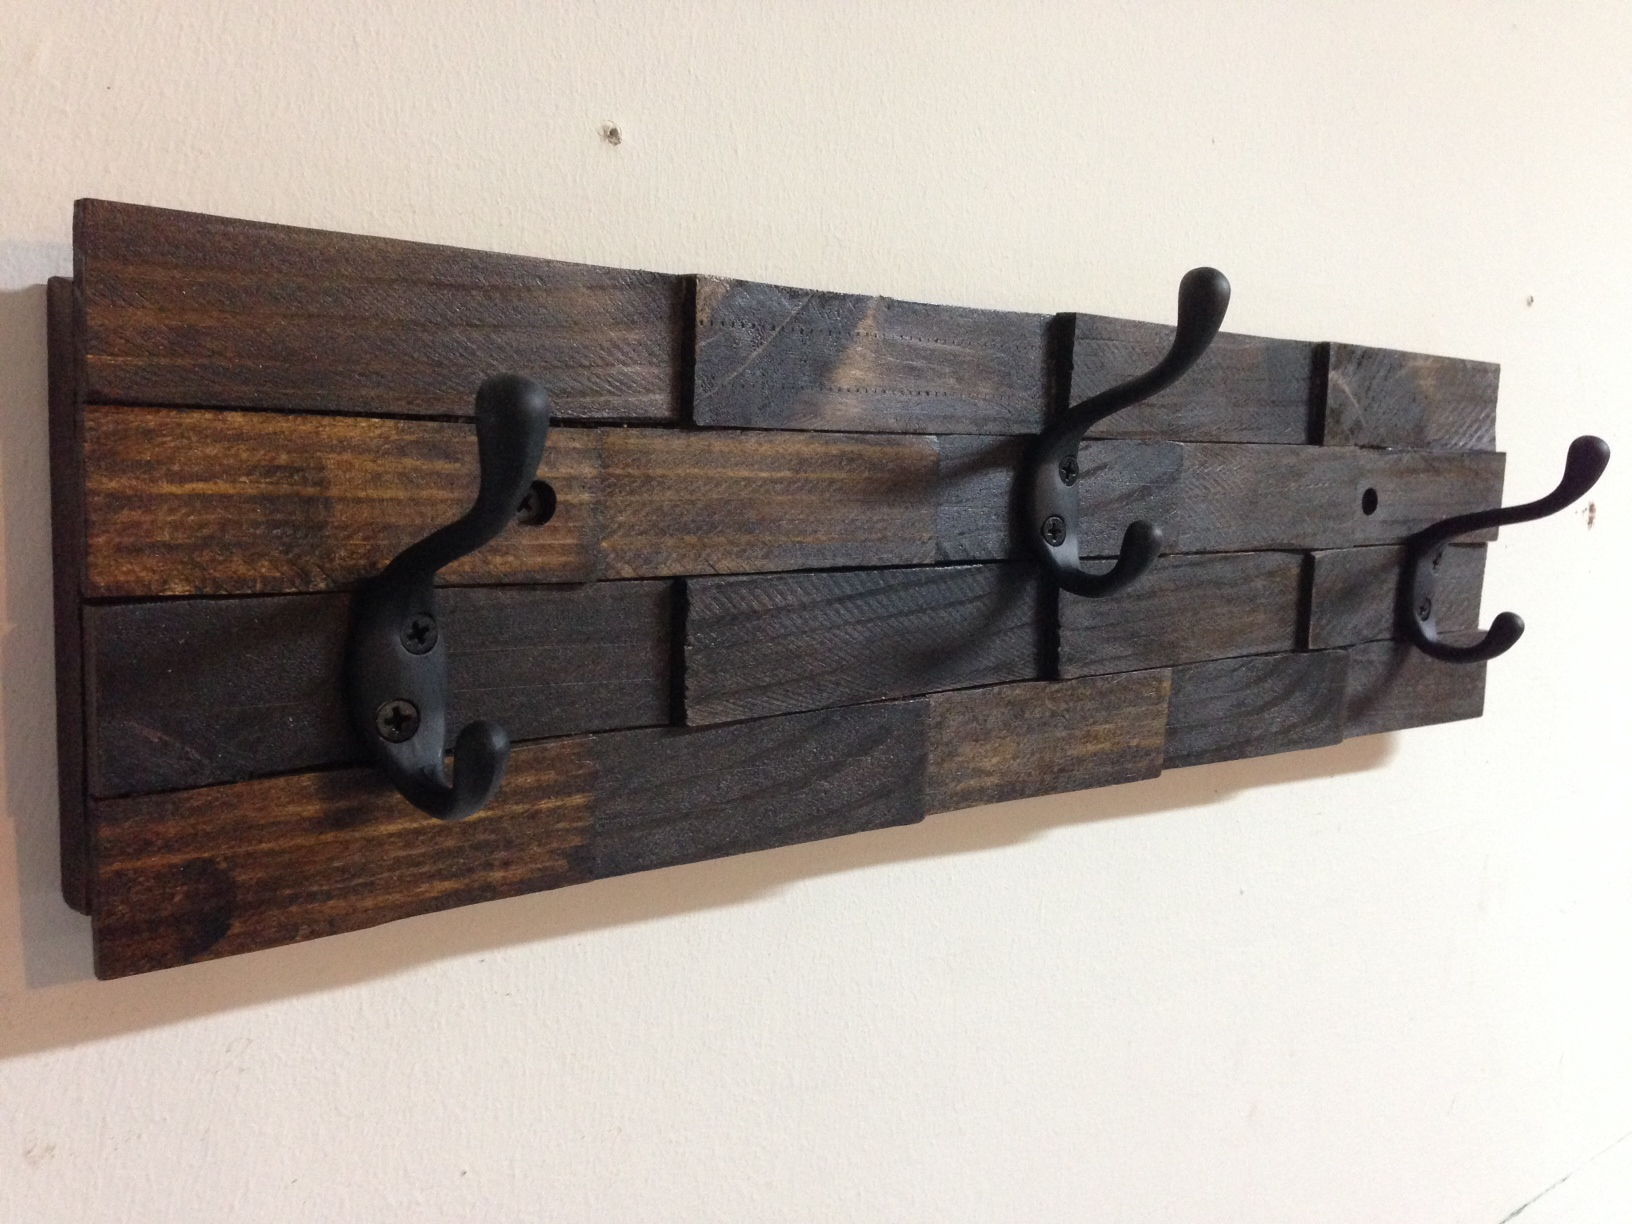 DIY Father's Day Gifts Made from wood